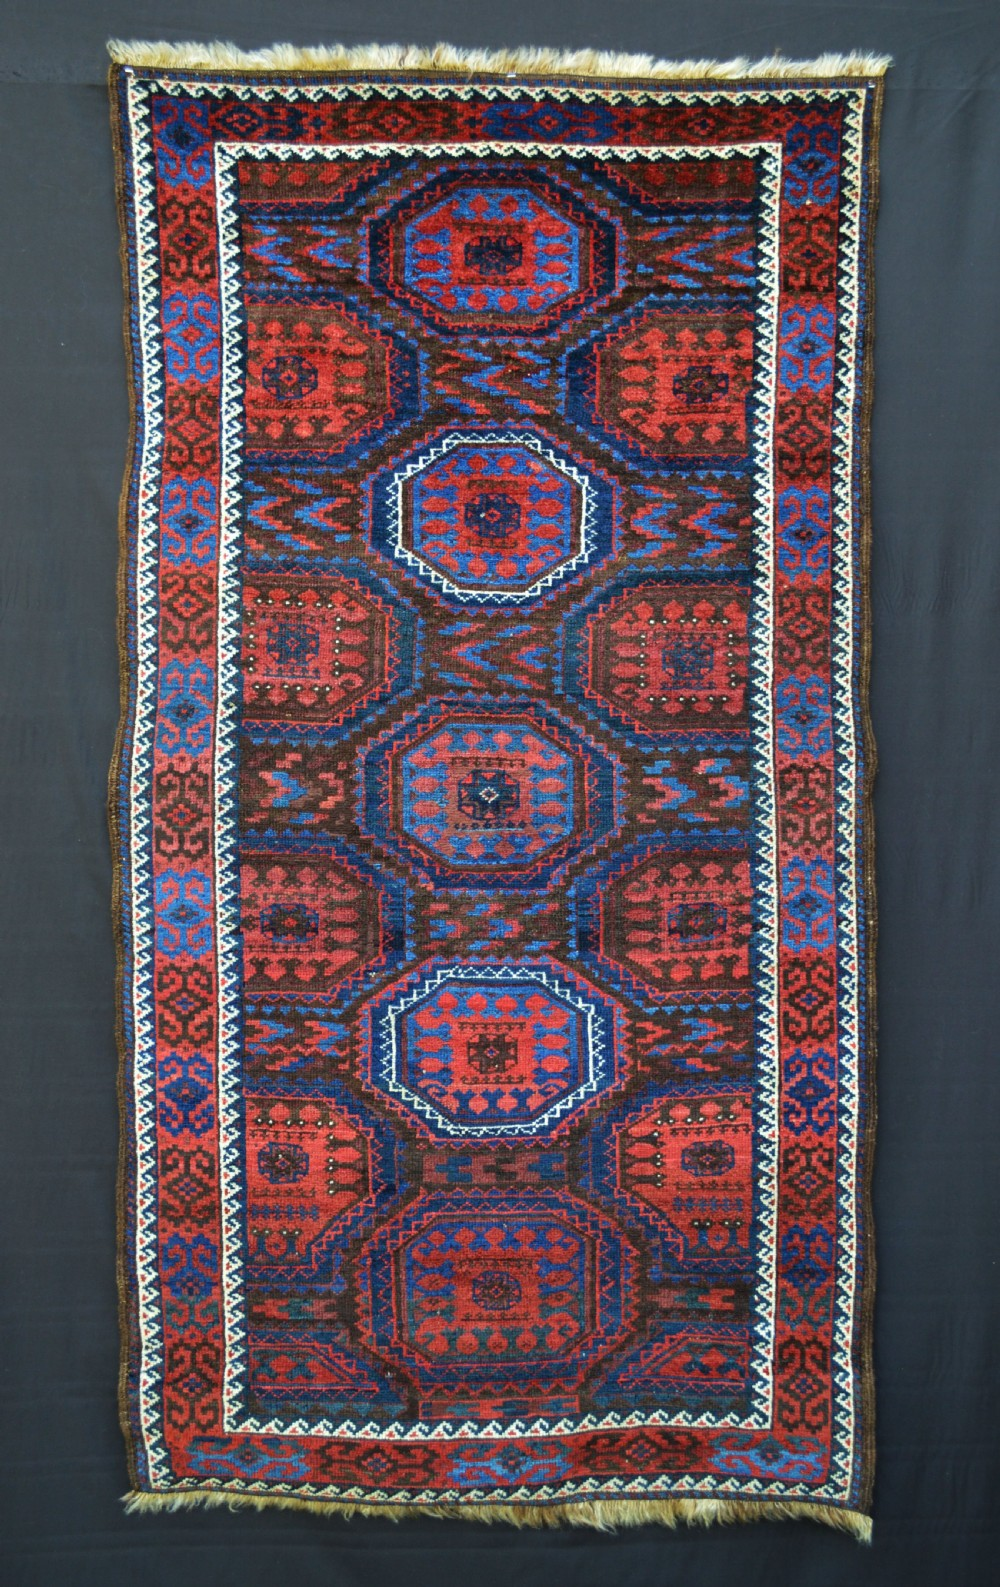 antique baluch rug mahdad khani tribe khorassan province northeast persia